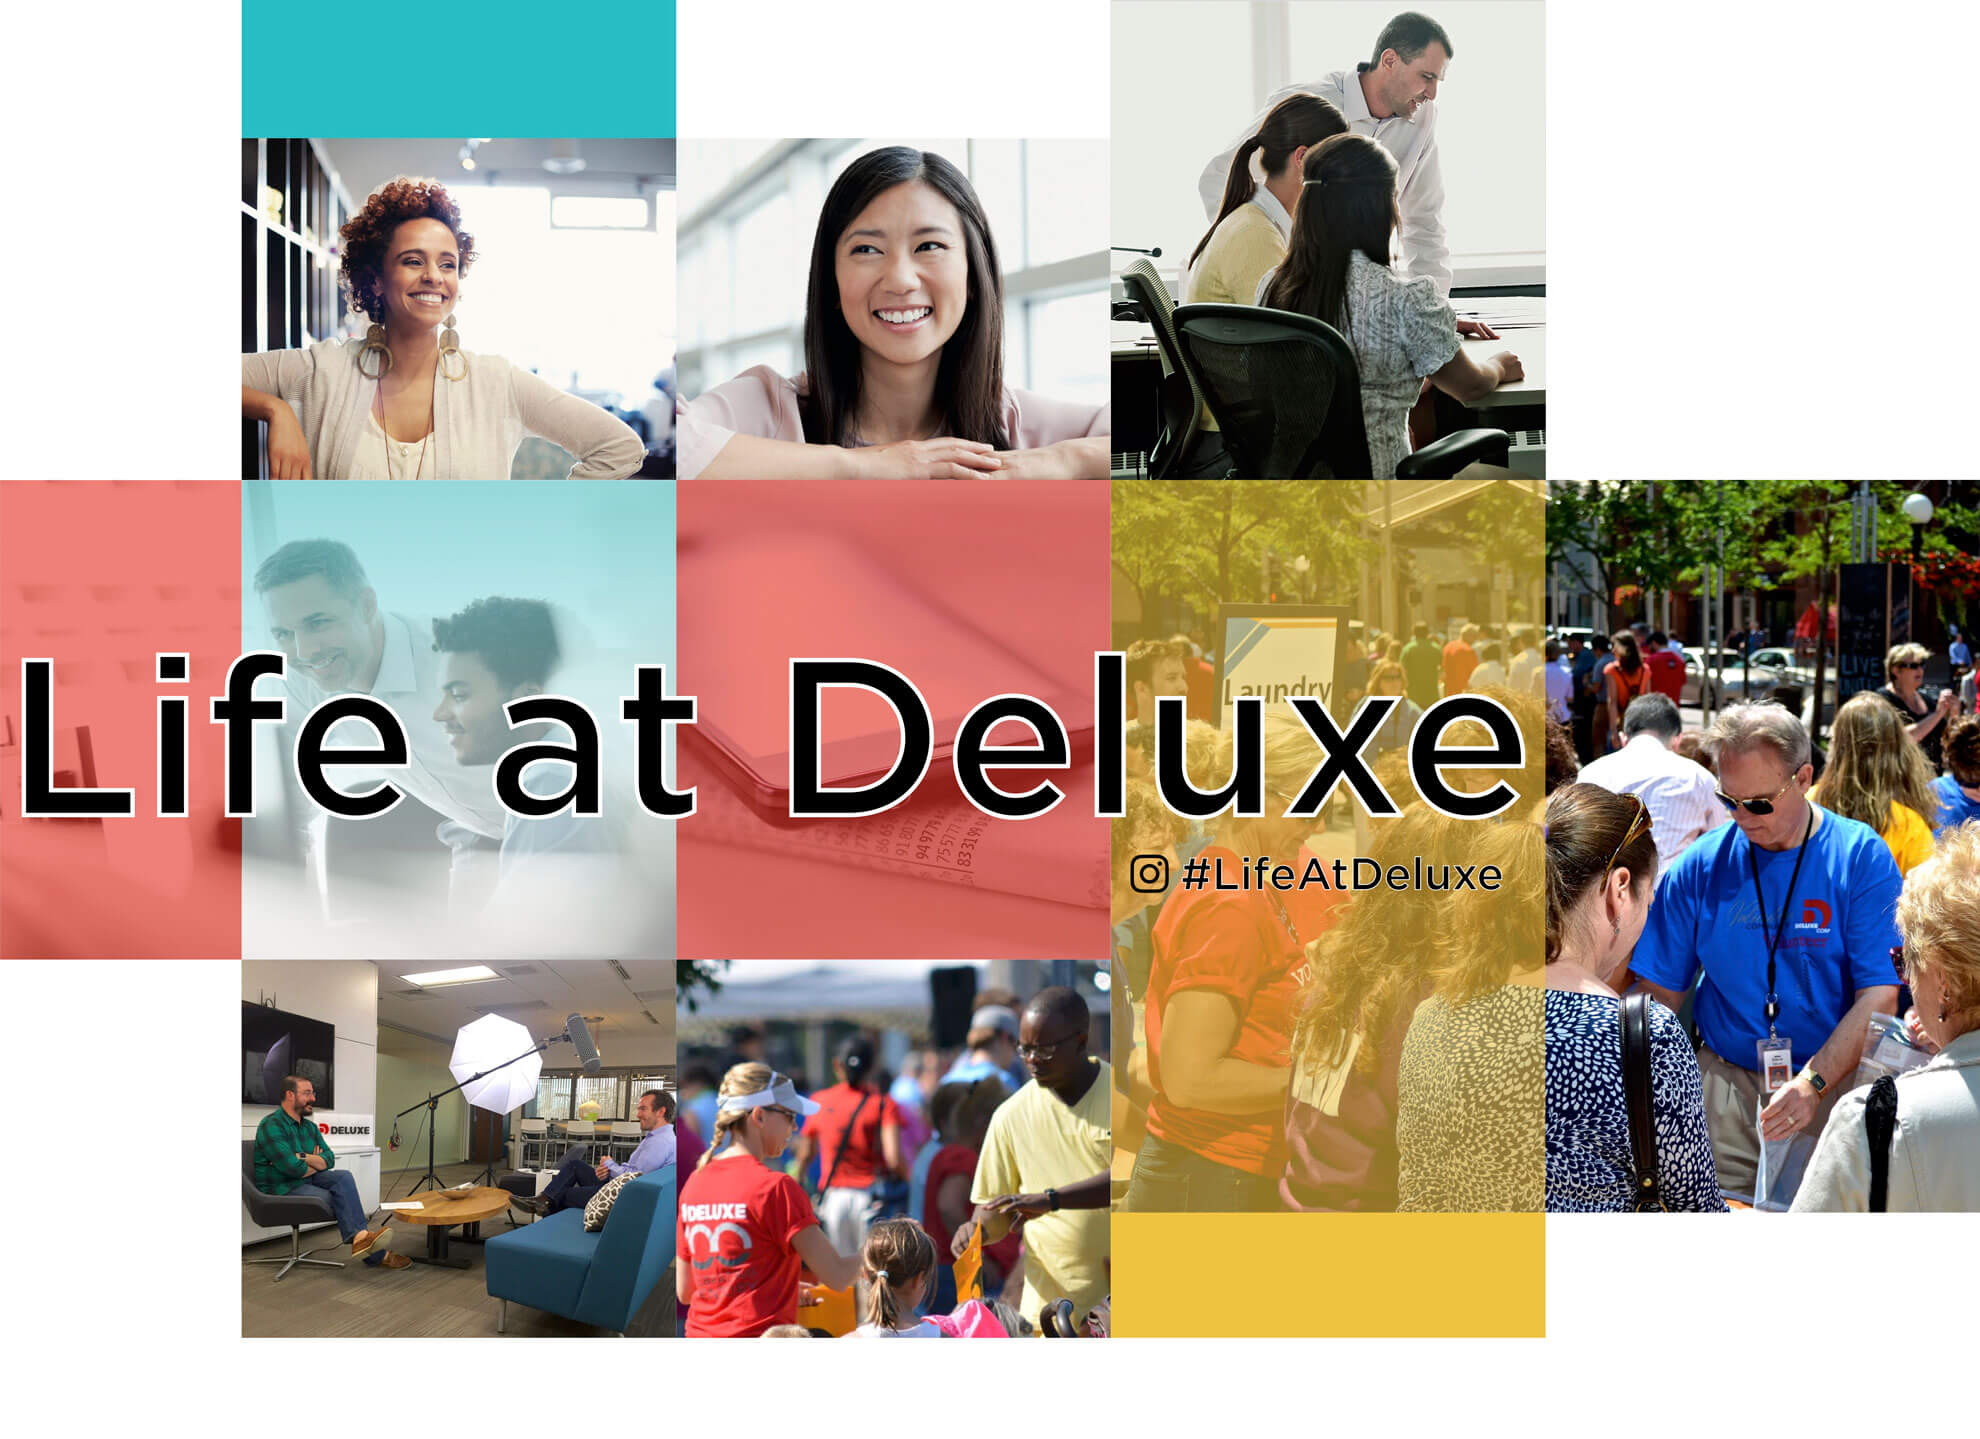 Life at Deluxe